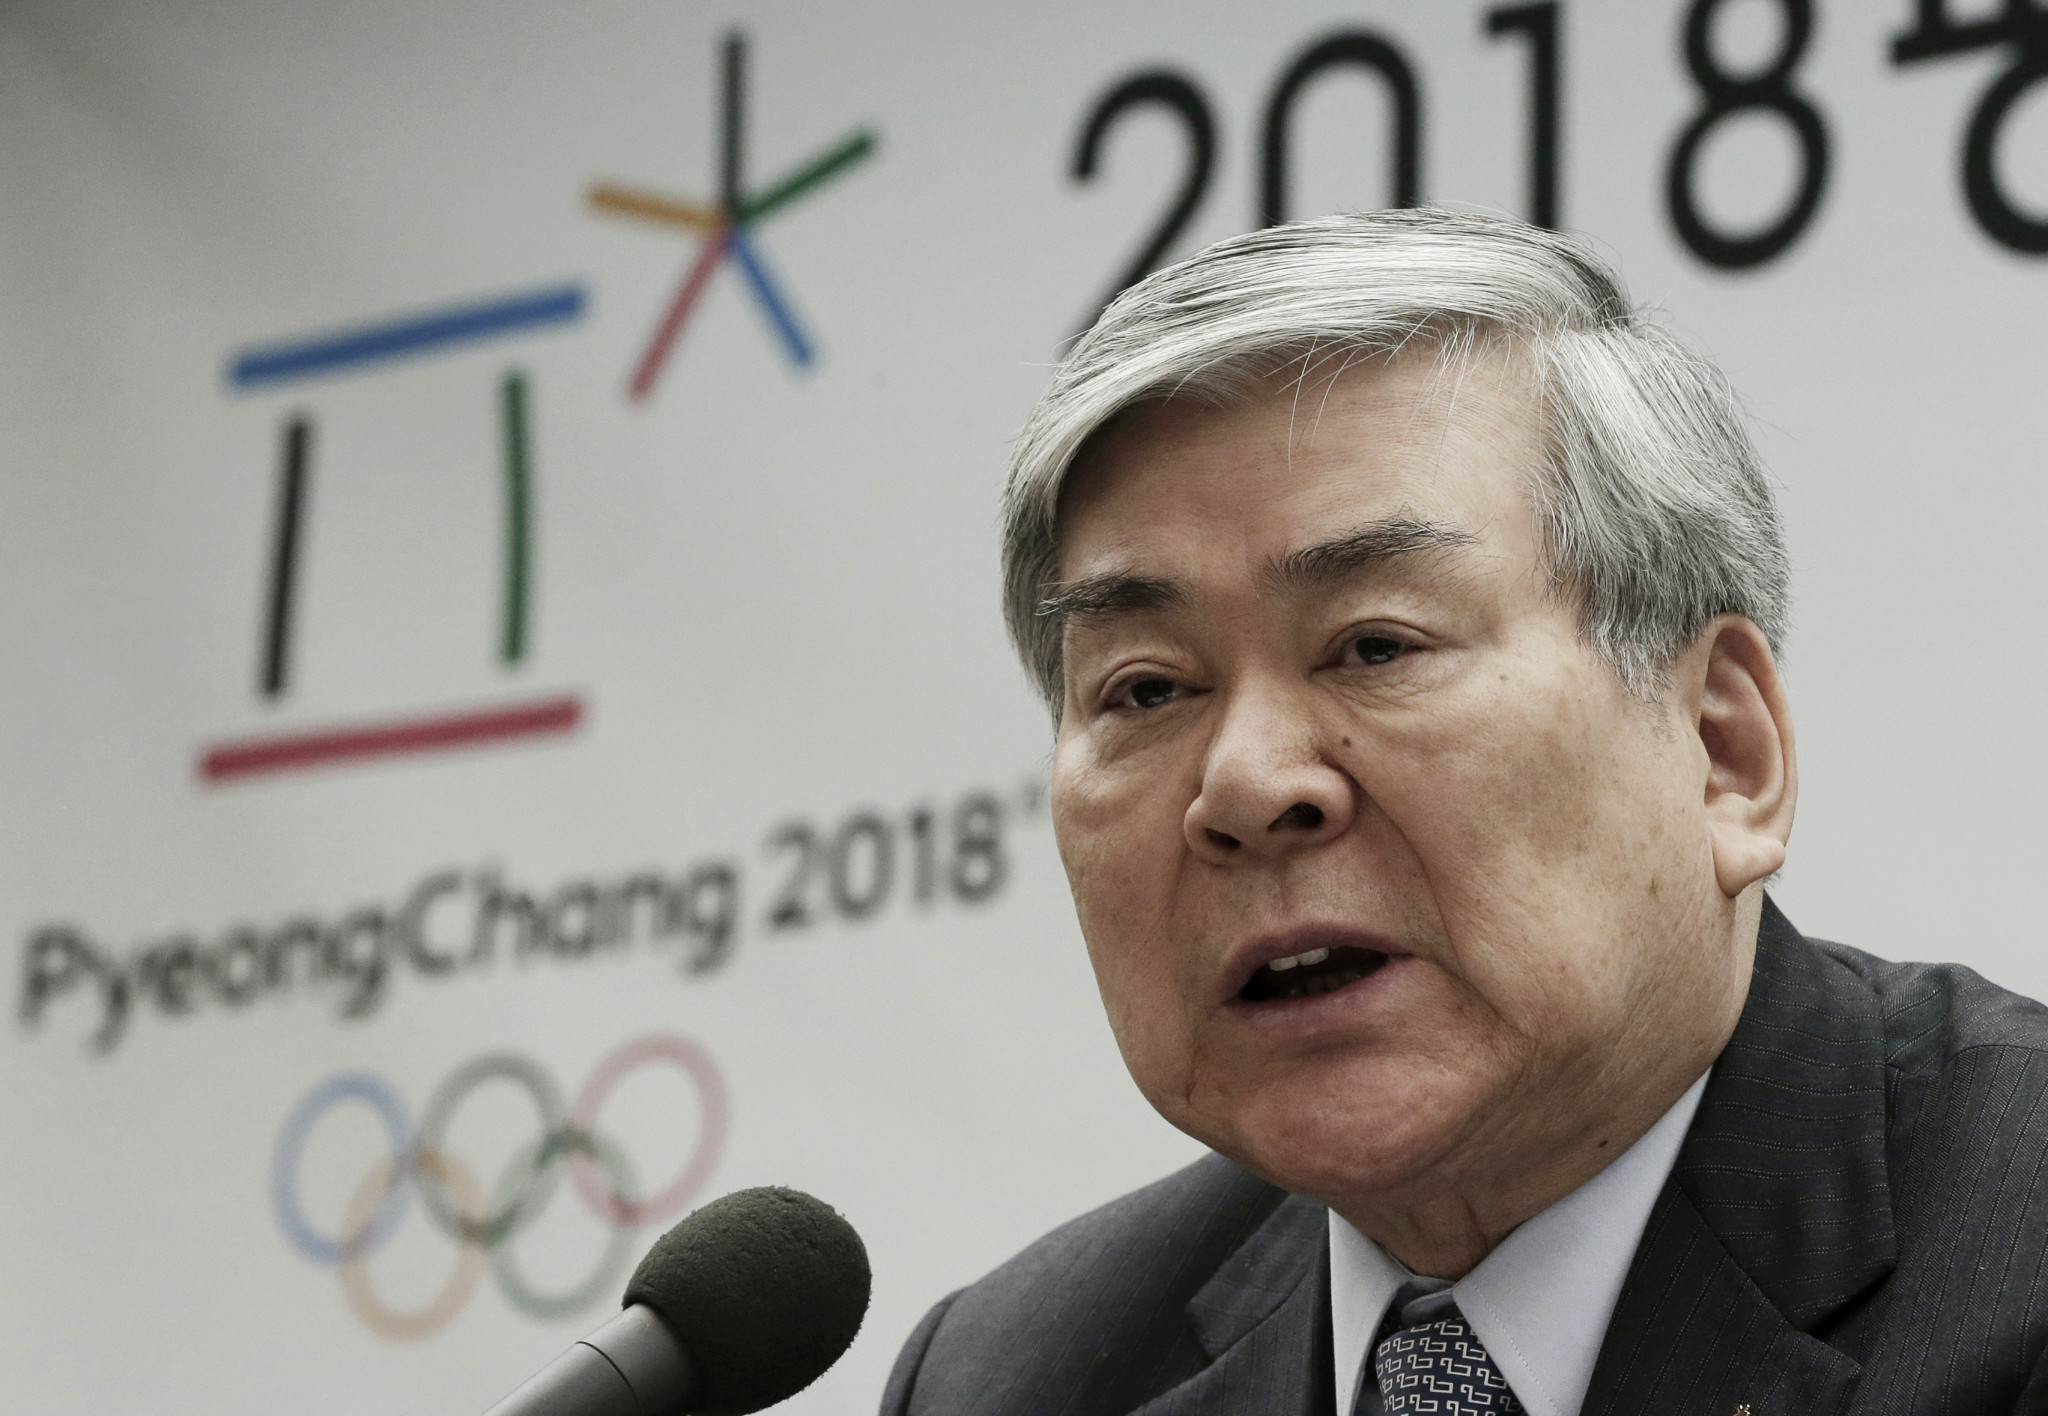 Pyeongchang 2018 bid leader dies at age of 70